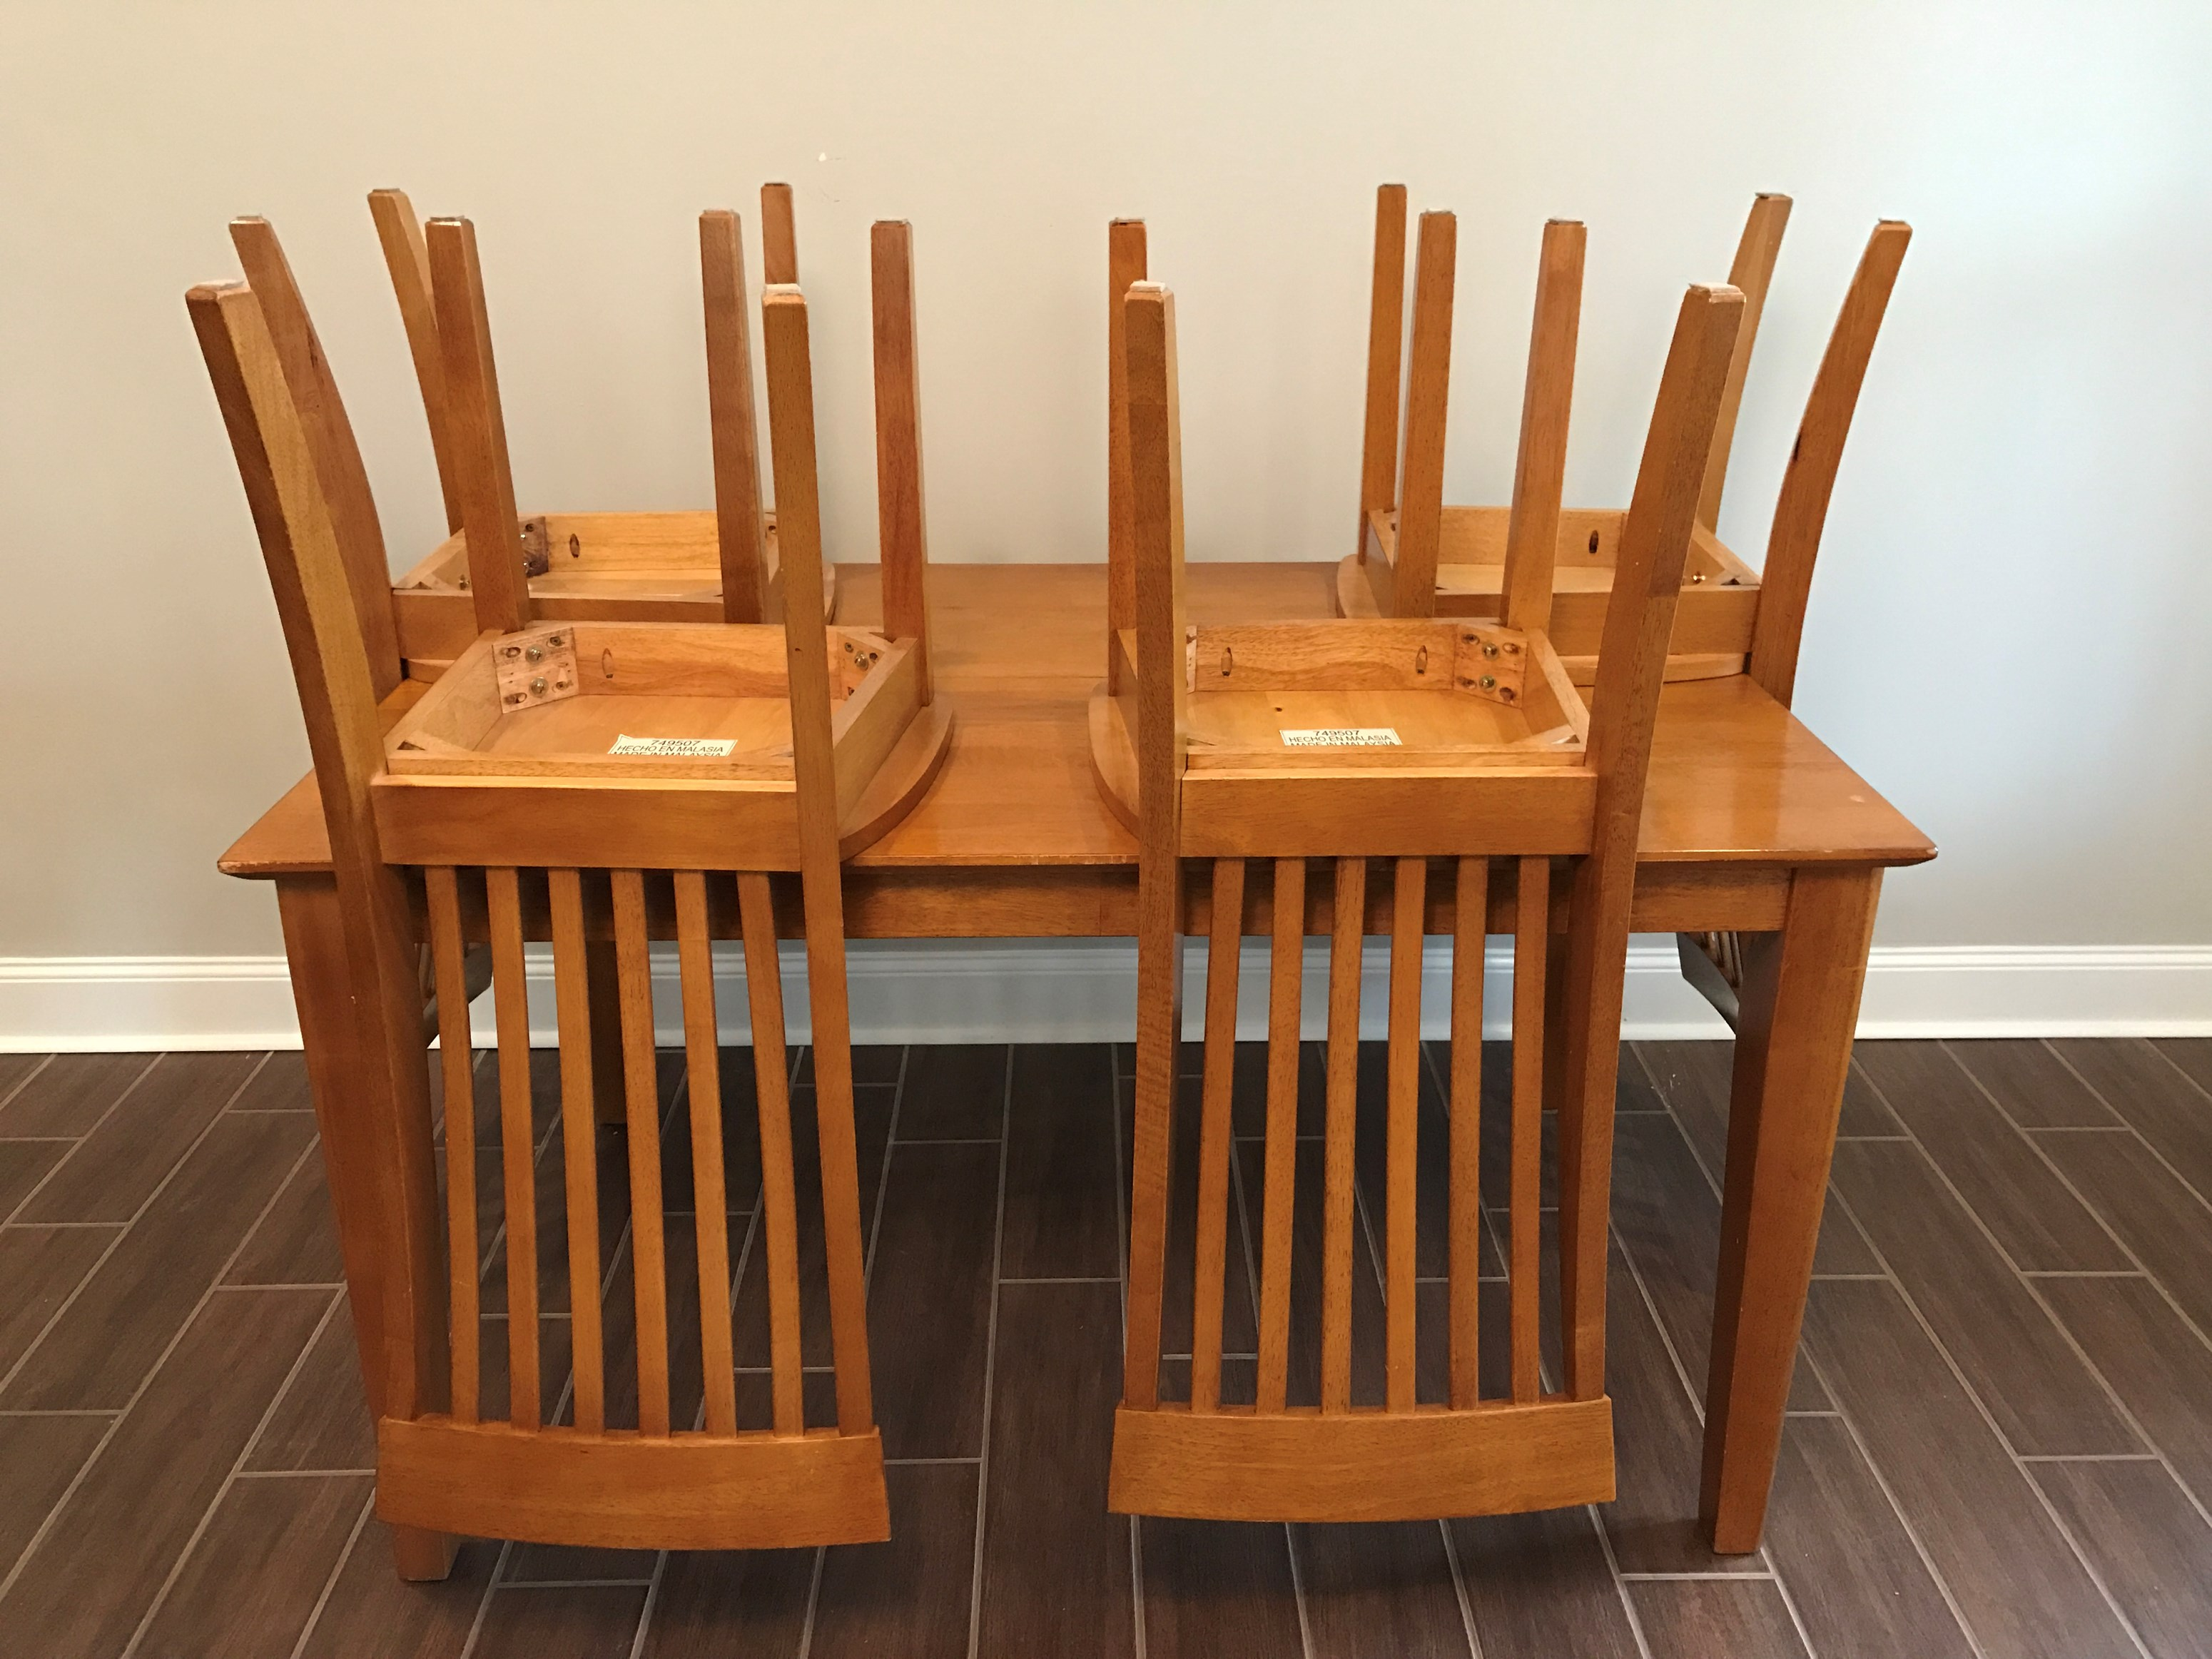 buy sell online used furniture and home decor atlanta metro area sell furniture and home decor dining table with 4 matching chairs